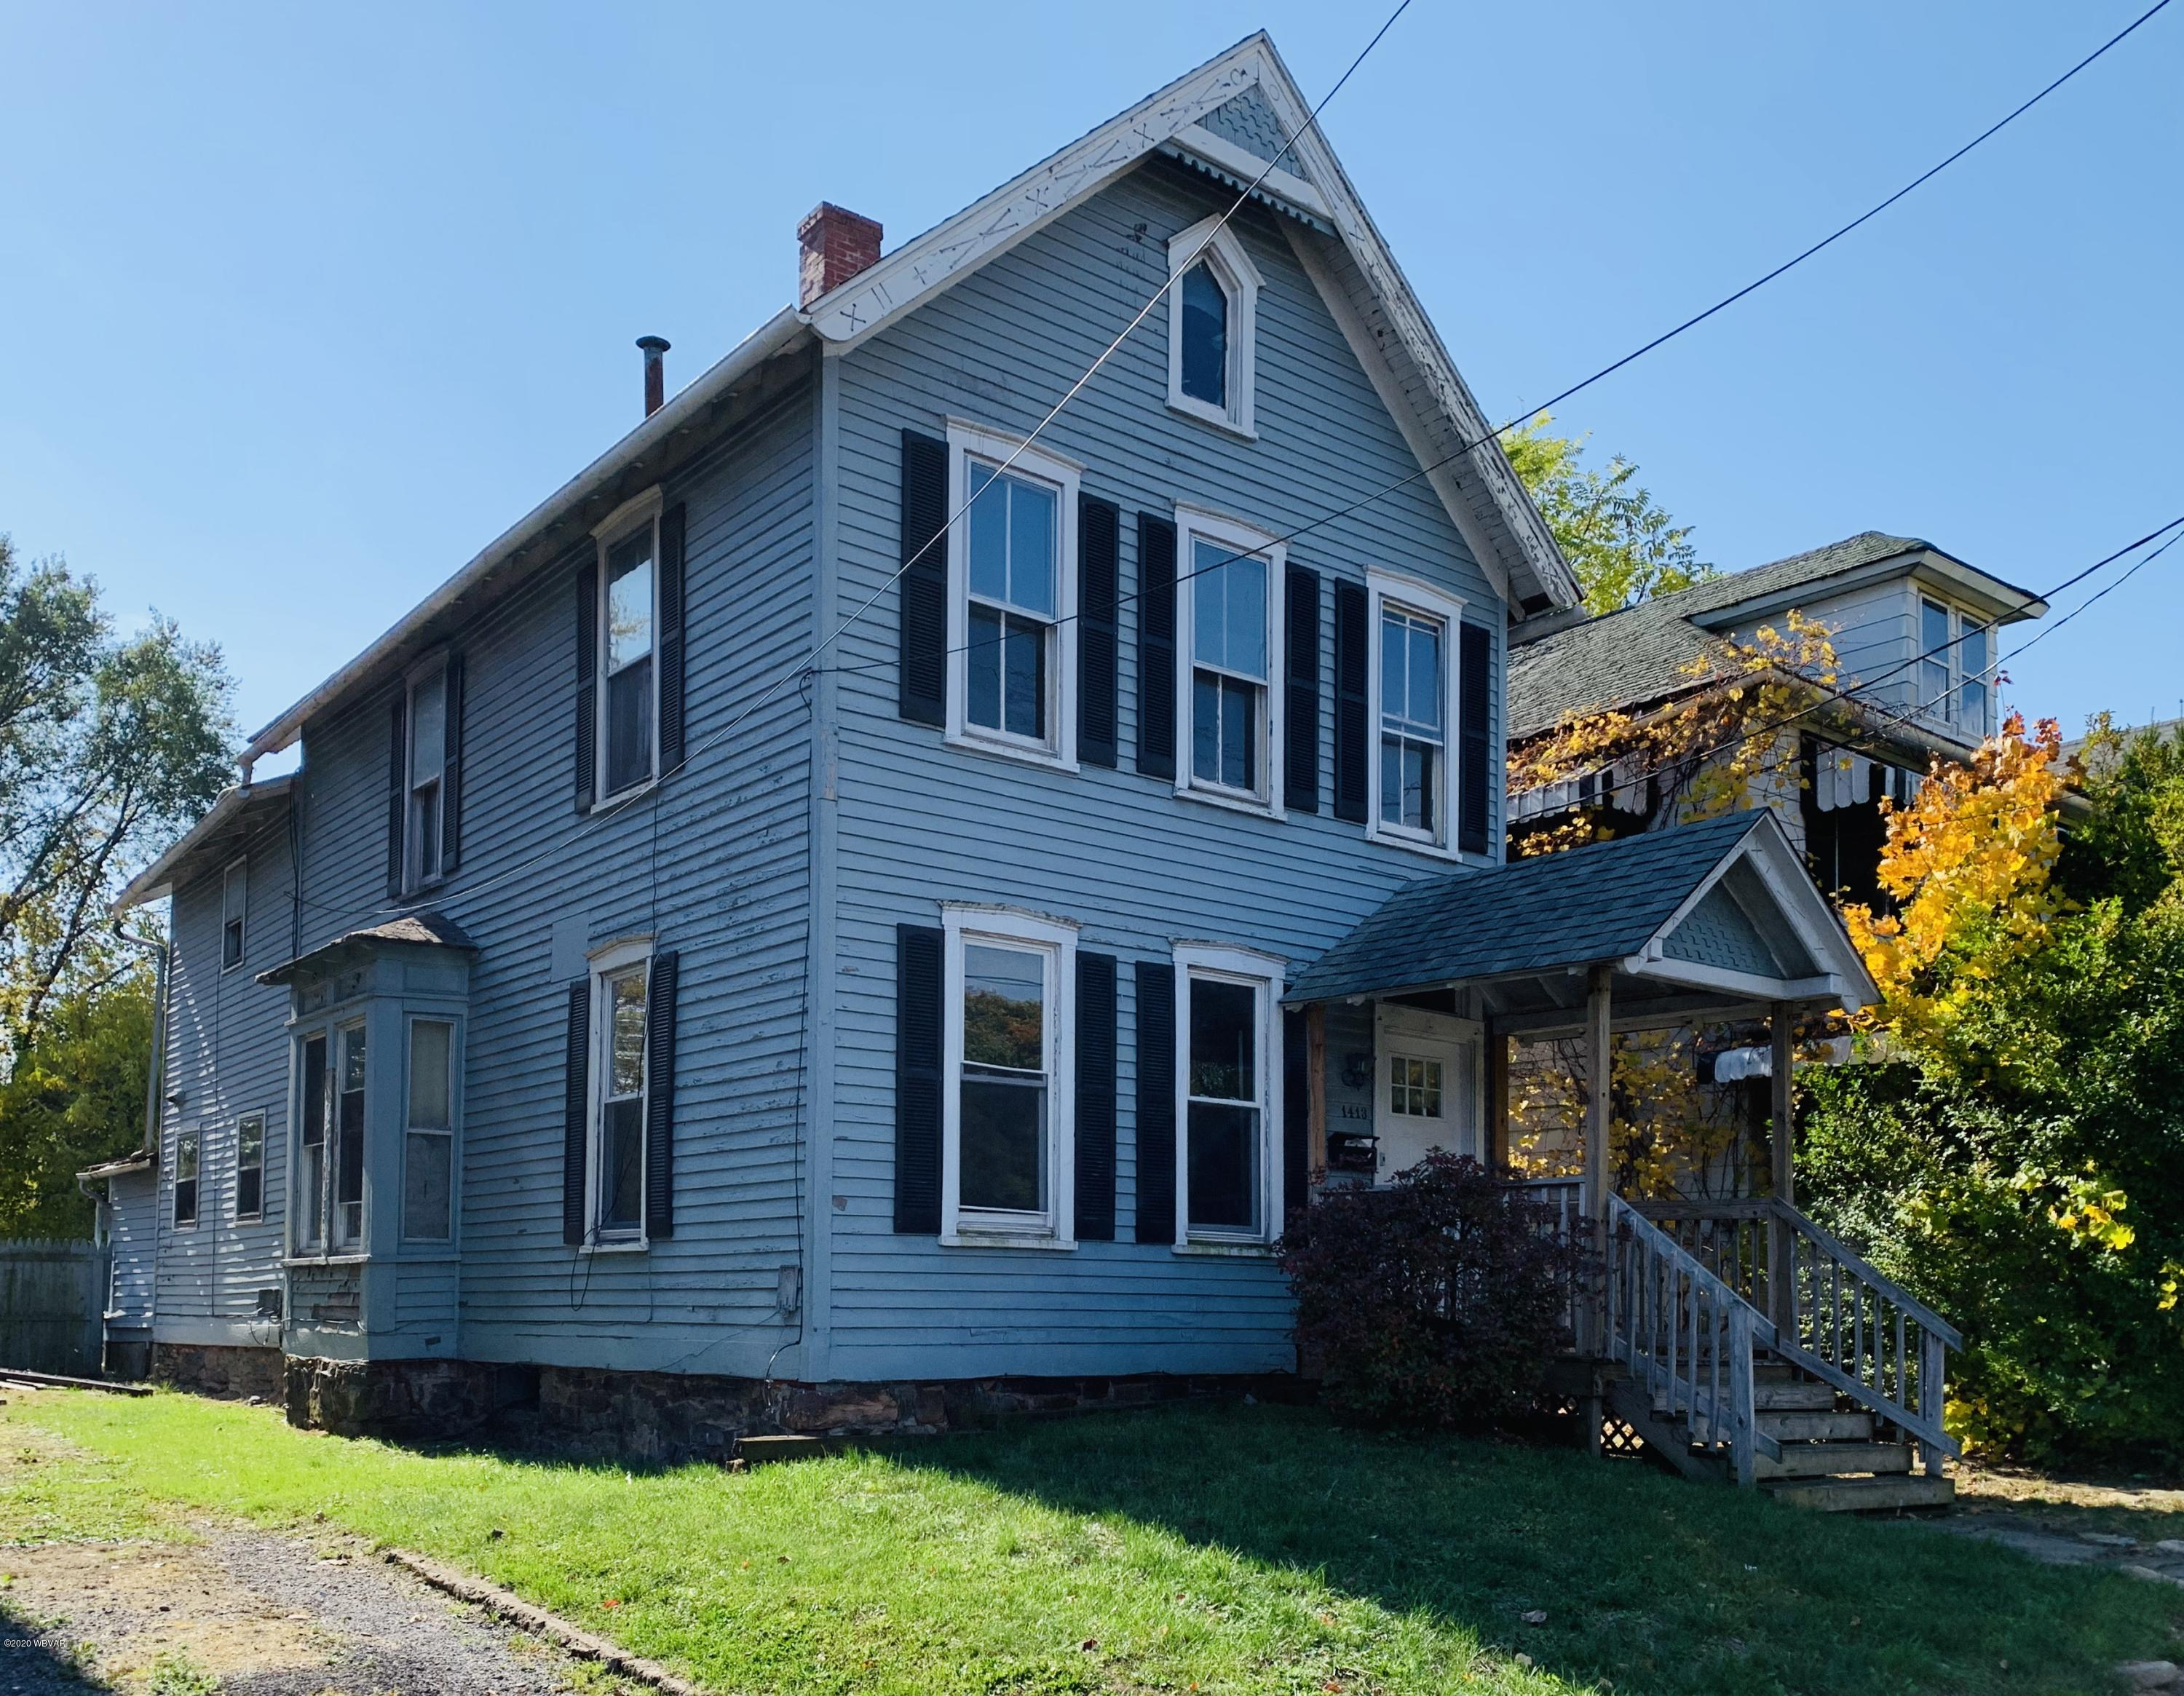 1413 4TH STREET, Williamsport, PA 17701, ,Multi-units,For sale,4TH,WB-91391